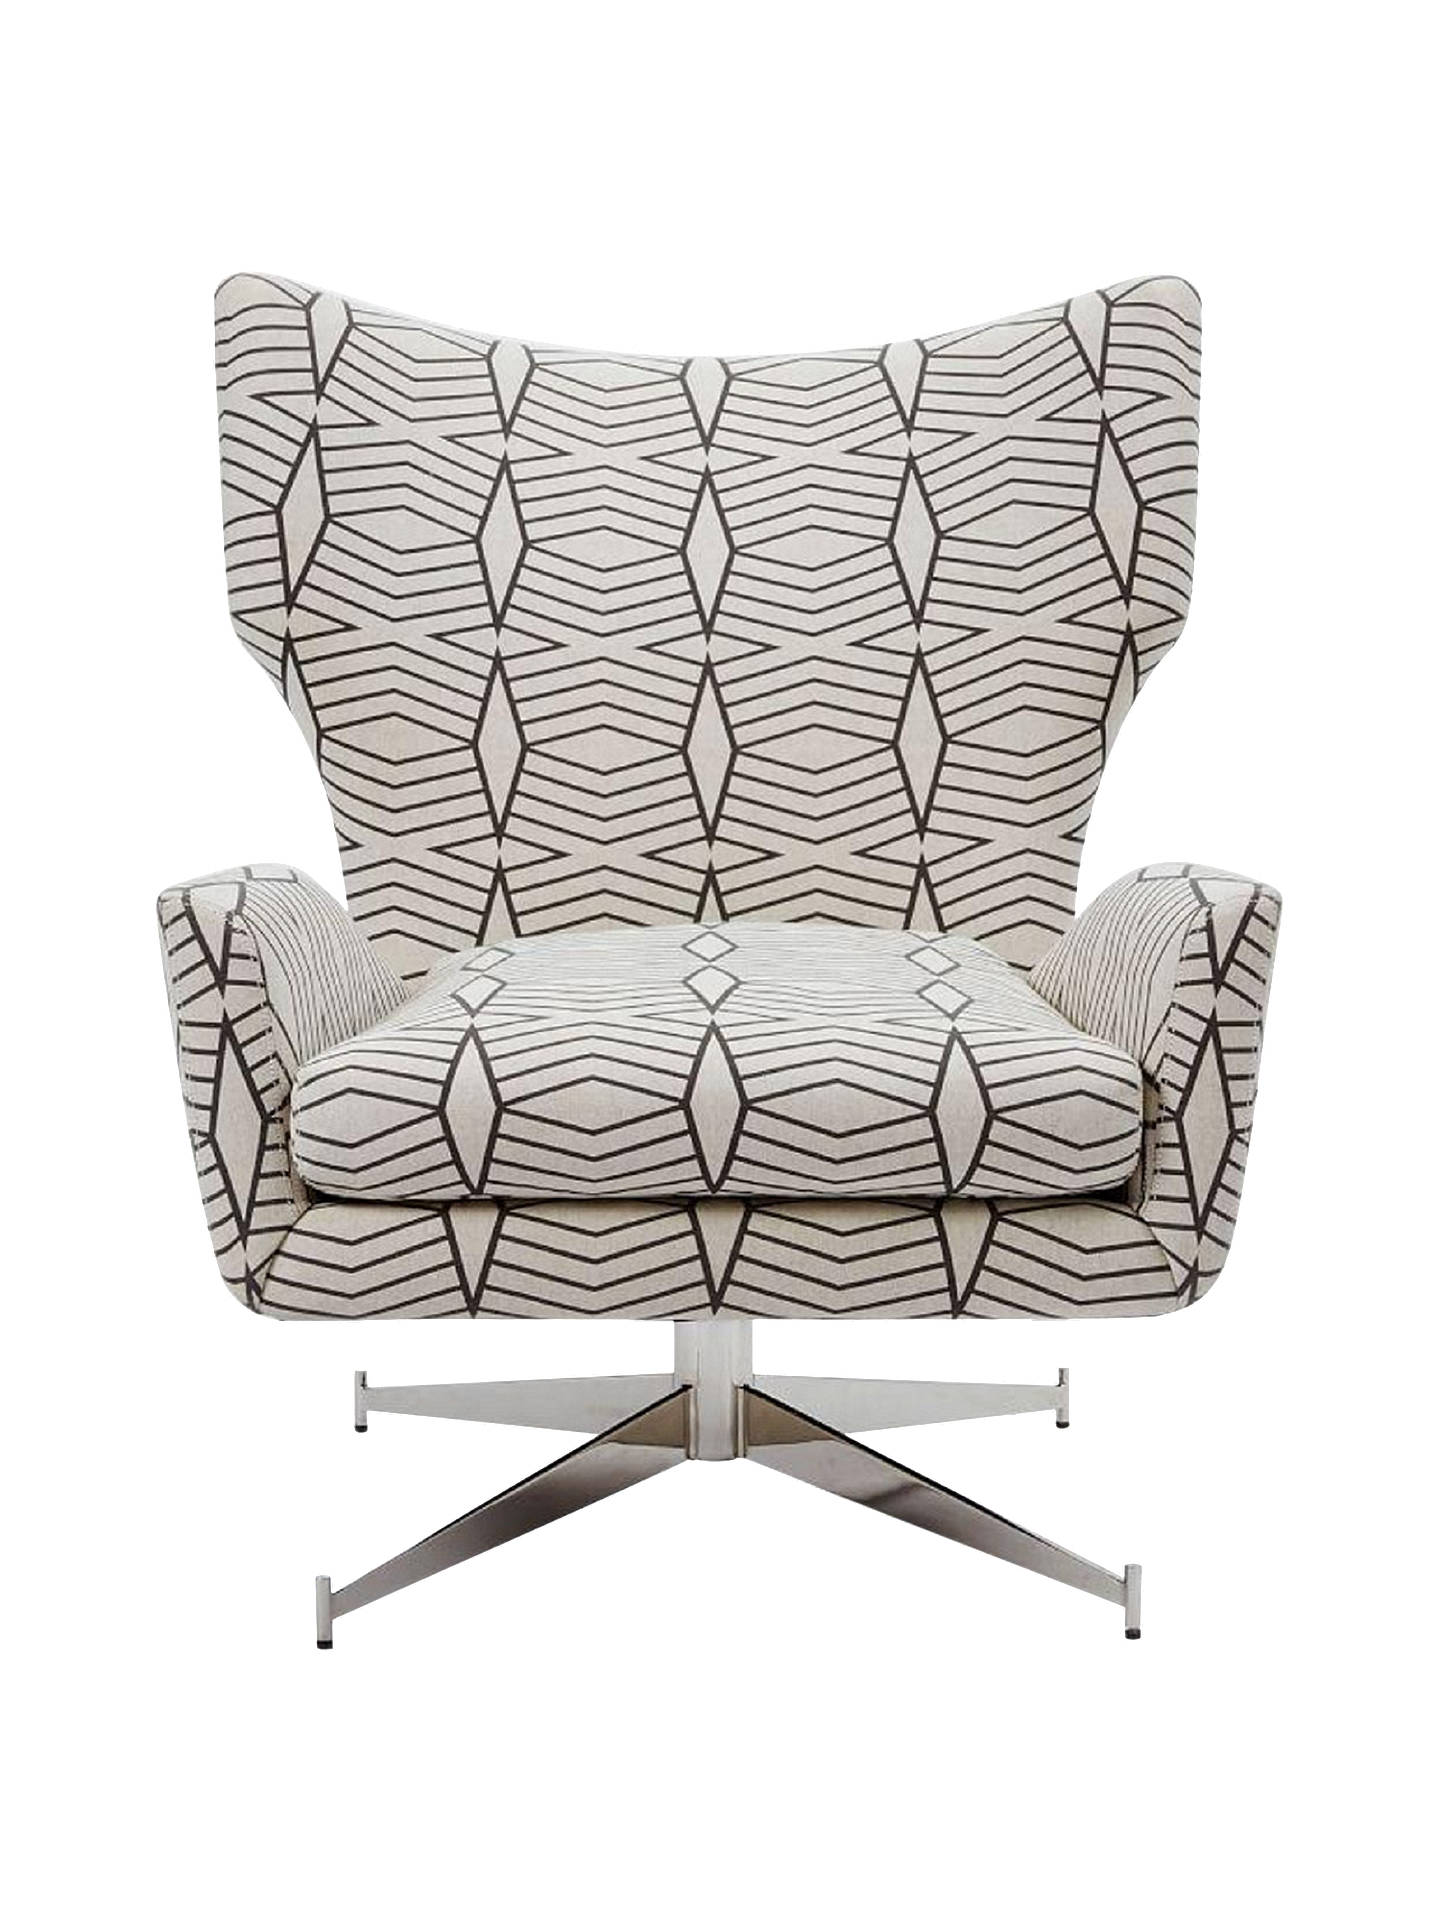 Stupendous West Elm Hemming Swivel Armchair Black White Geometric At Machost Co Dining Chair Design Ideas Machostcouk